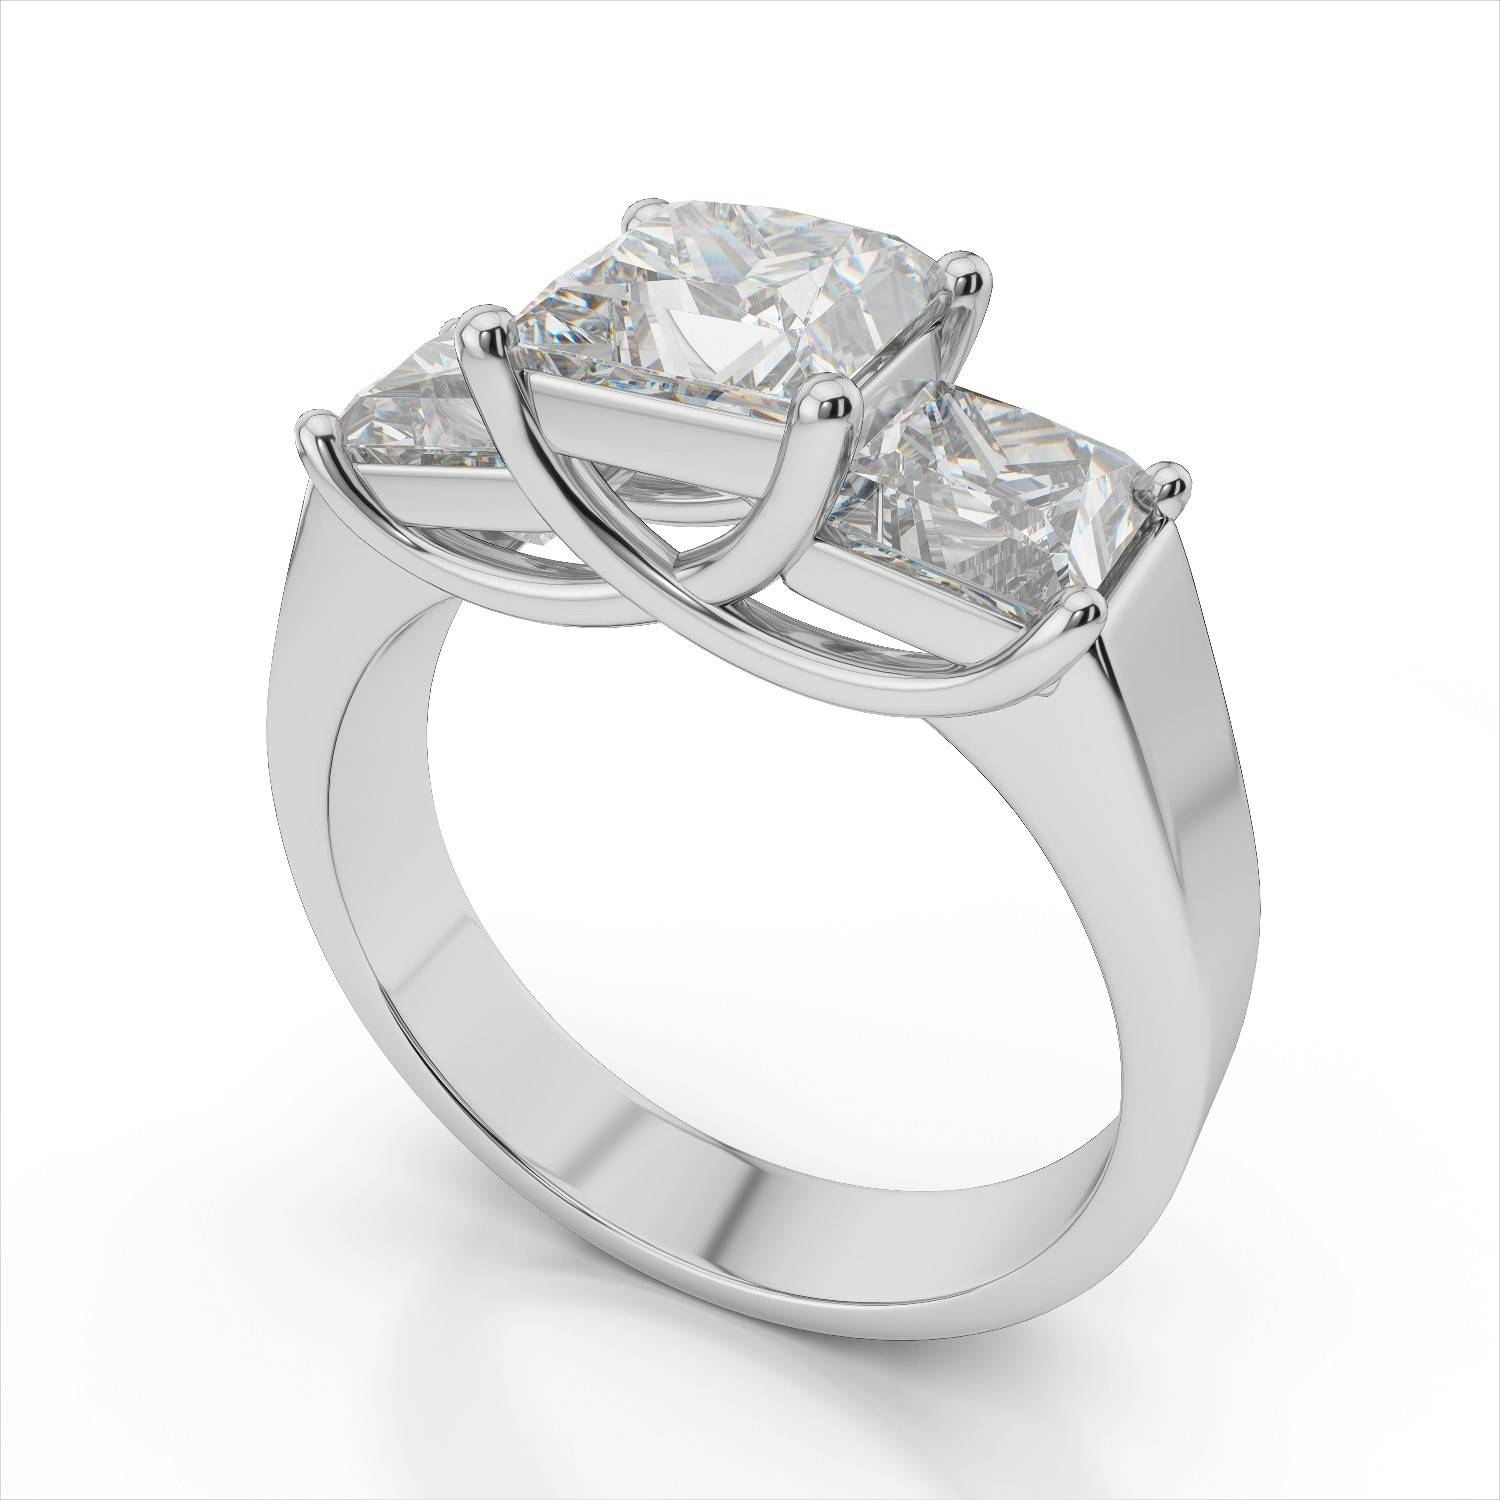 Rings : 3 Stone Ring 3 Stone Princess Cut Engagement Rings Diamond Throughout Latest 3 Stone Anniversary Rings Settings (View 11 of 25)